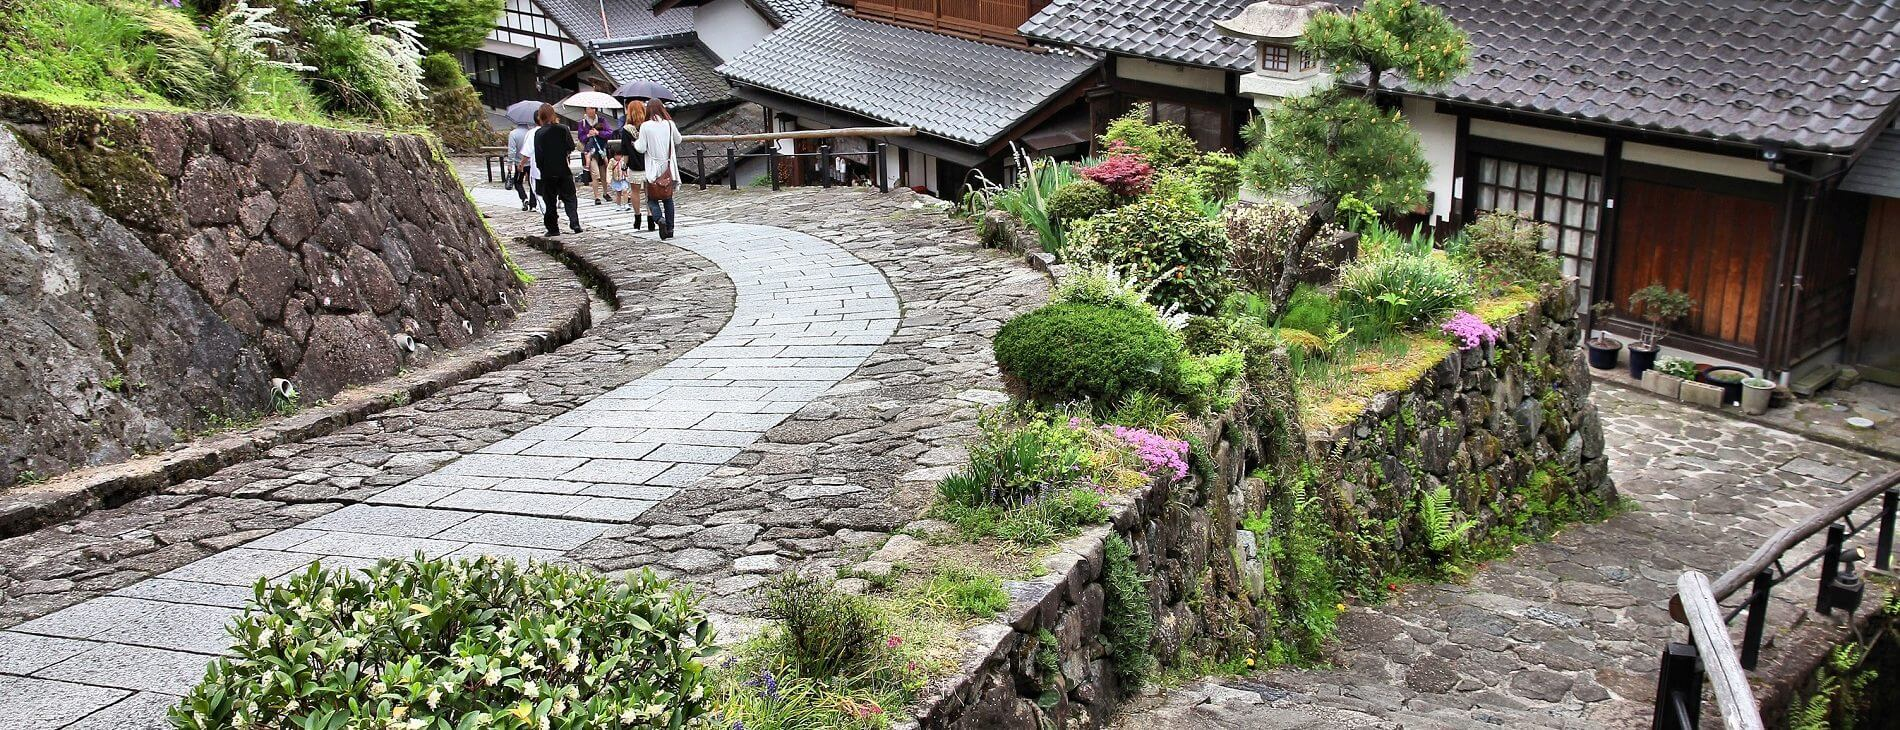 mastroviaggiatore-magome&Tsumago- famous Nakasendo trail in Magome old town. Old route hundreds of years old Copertina.